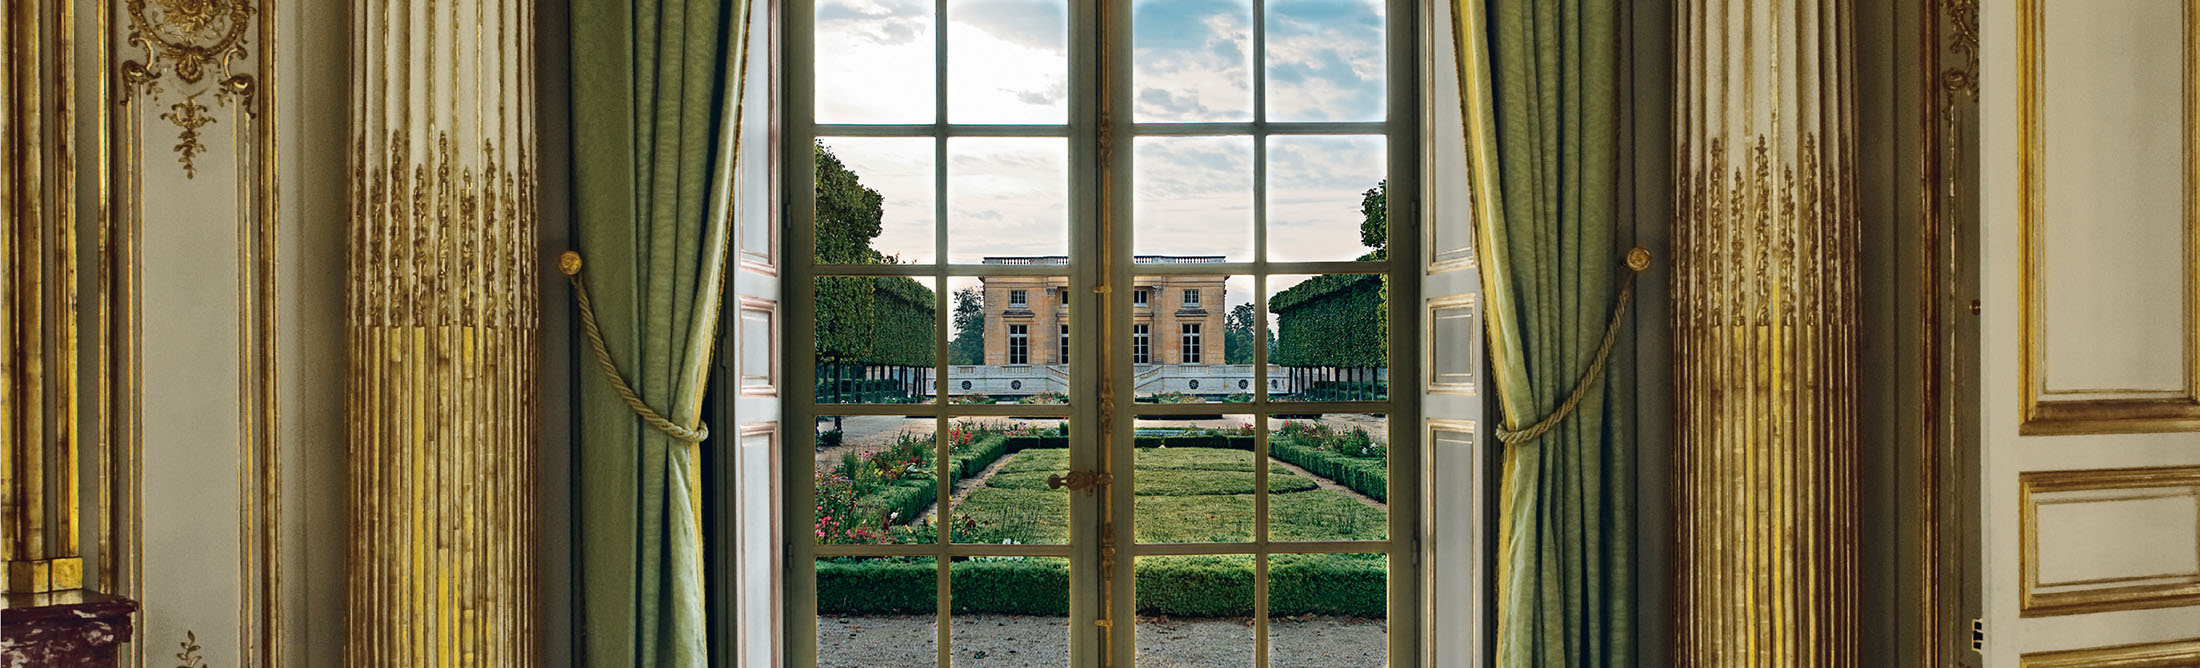 There's a Lot You Don't Know About Versailles